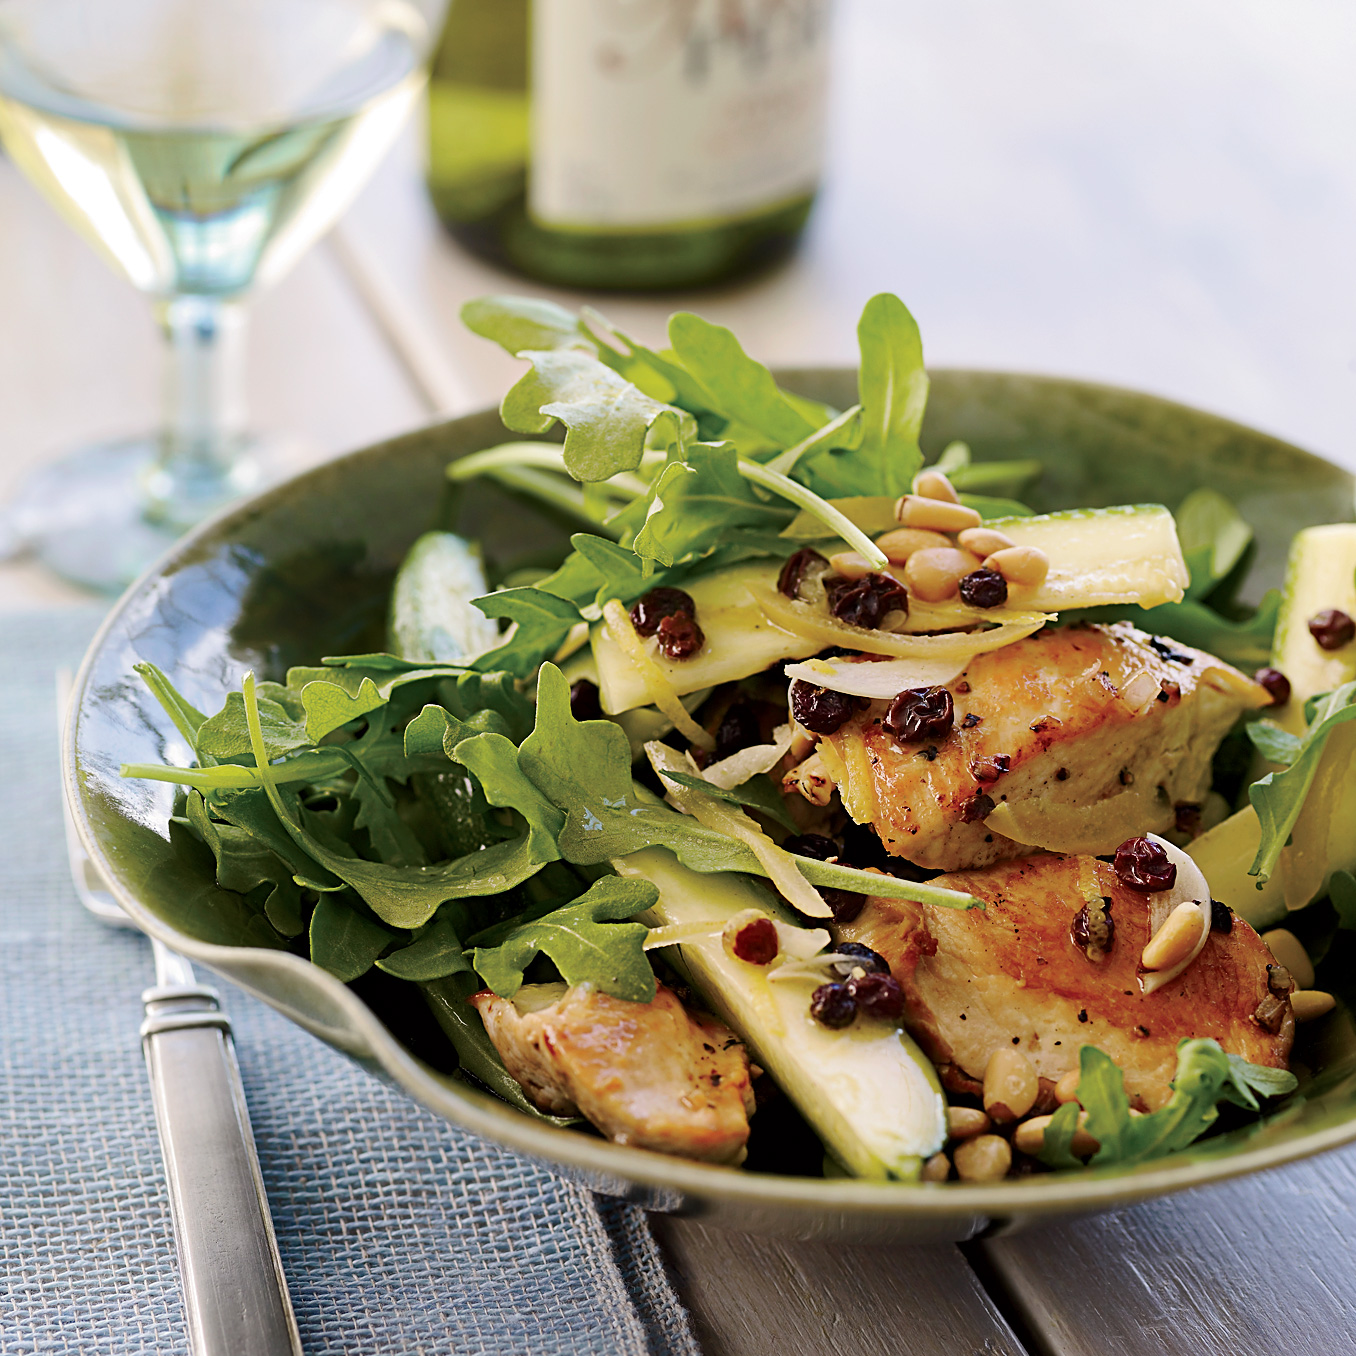 200904-r-chicken-salad.jpg